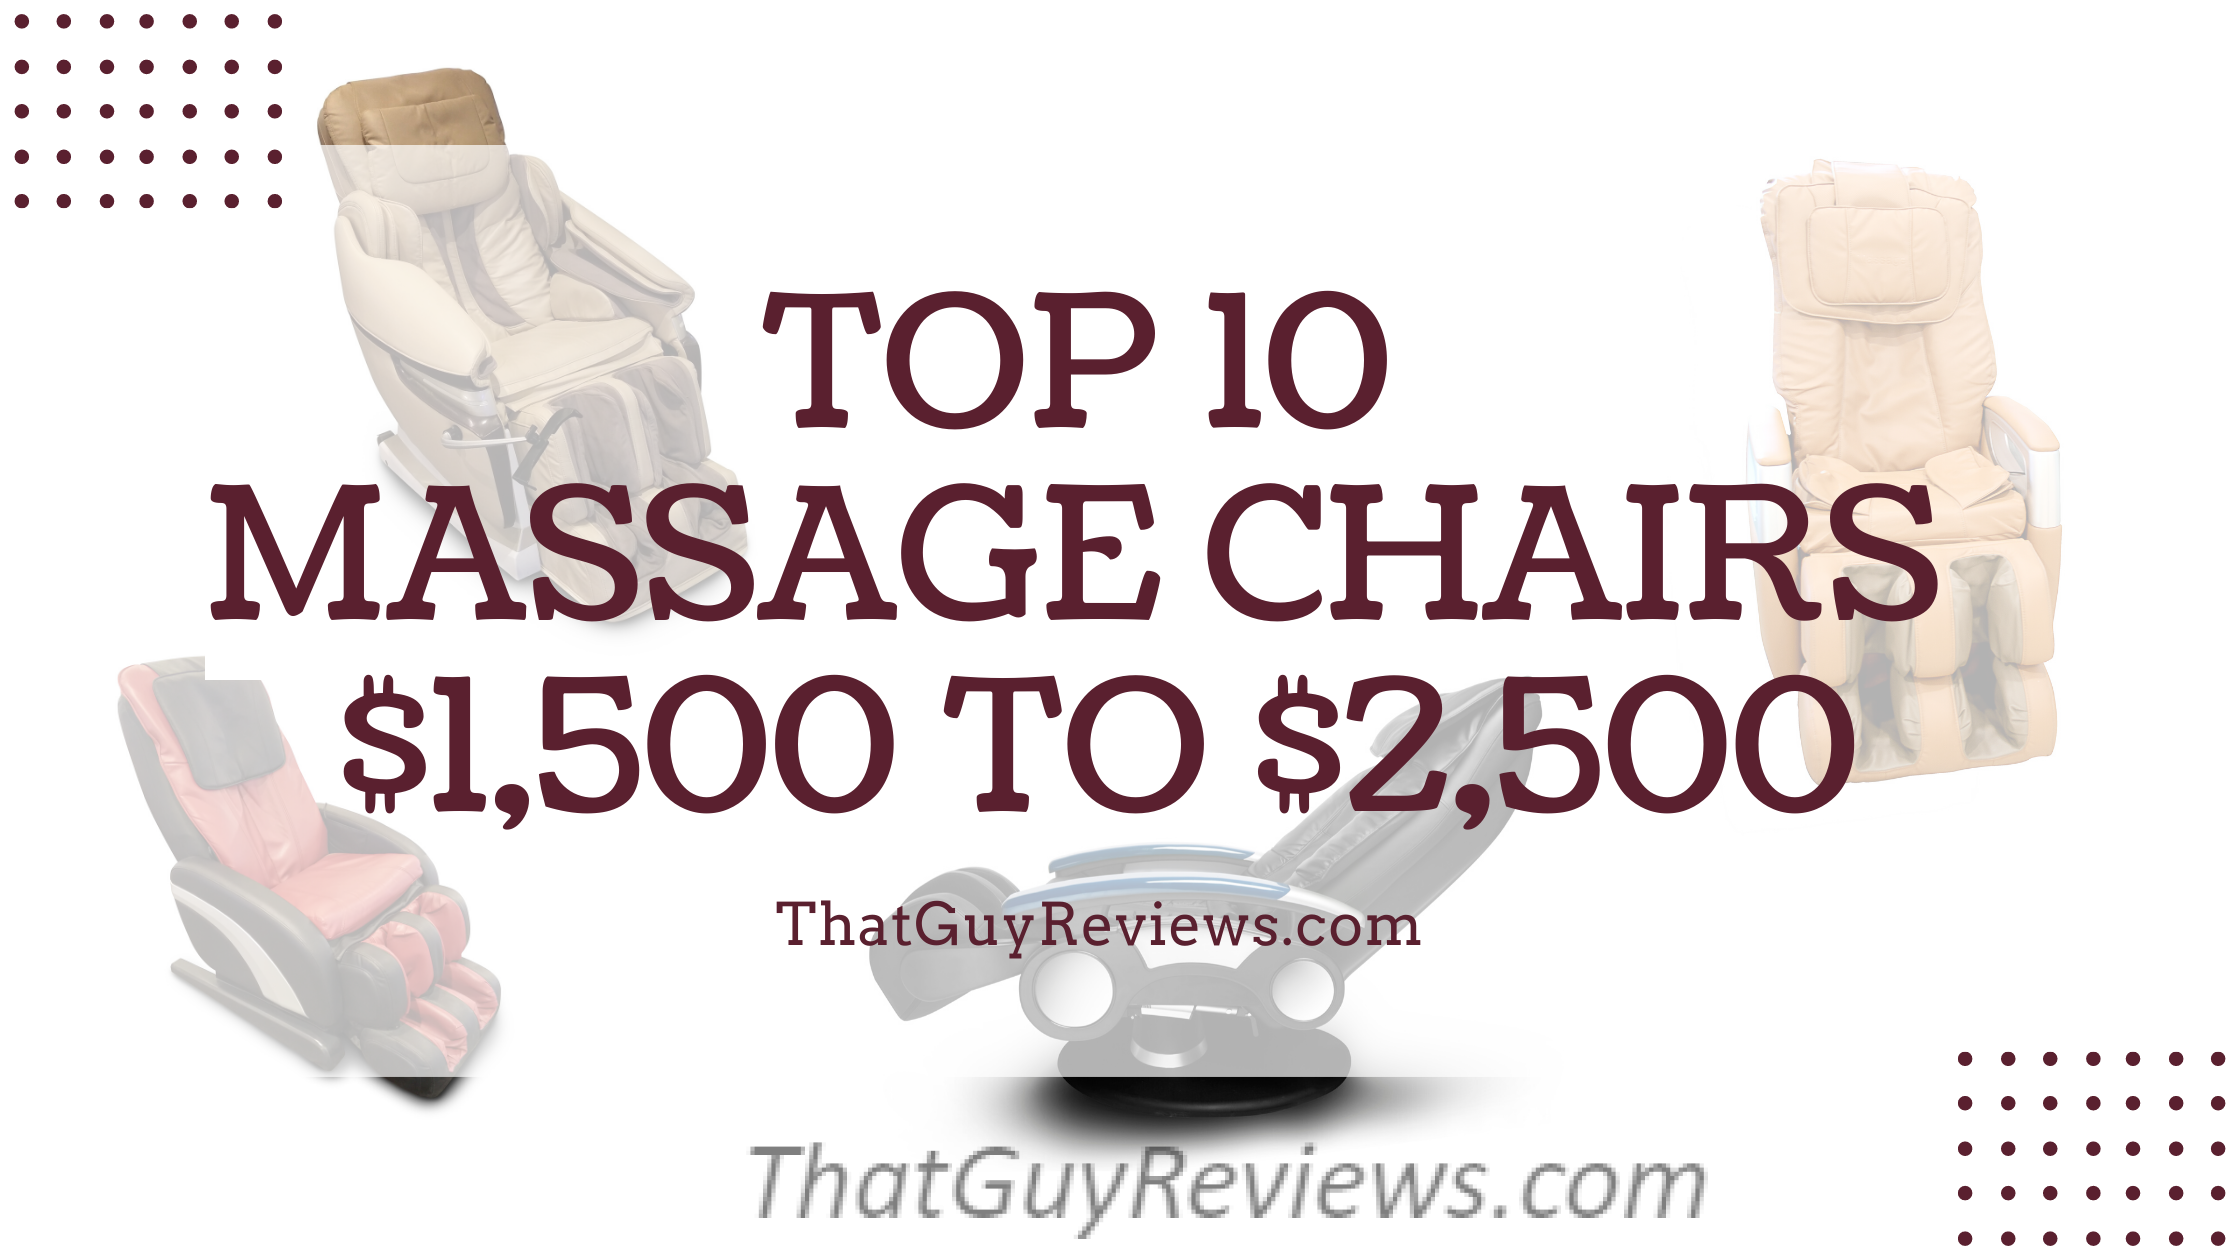 Best Massage Chair $1,500 to $2,500 in 2020